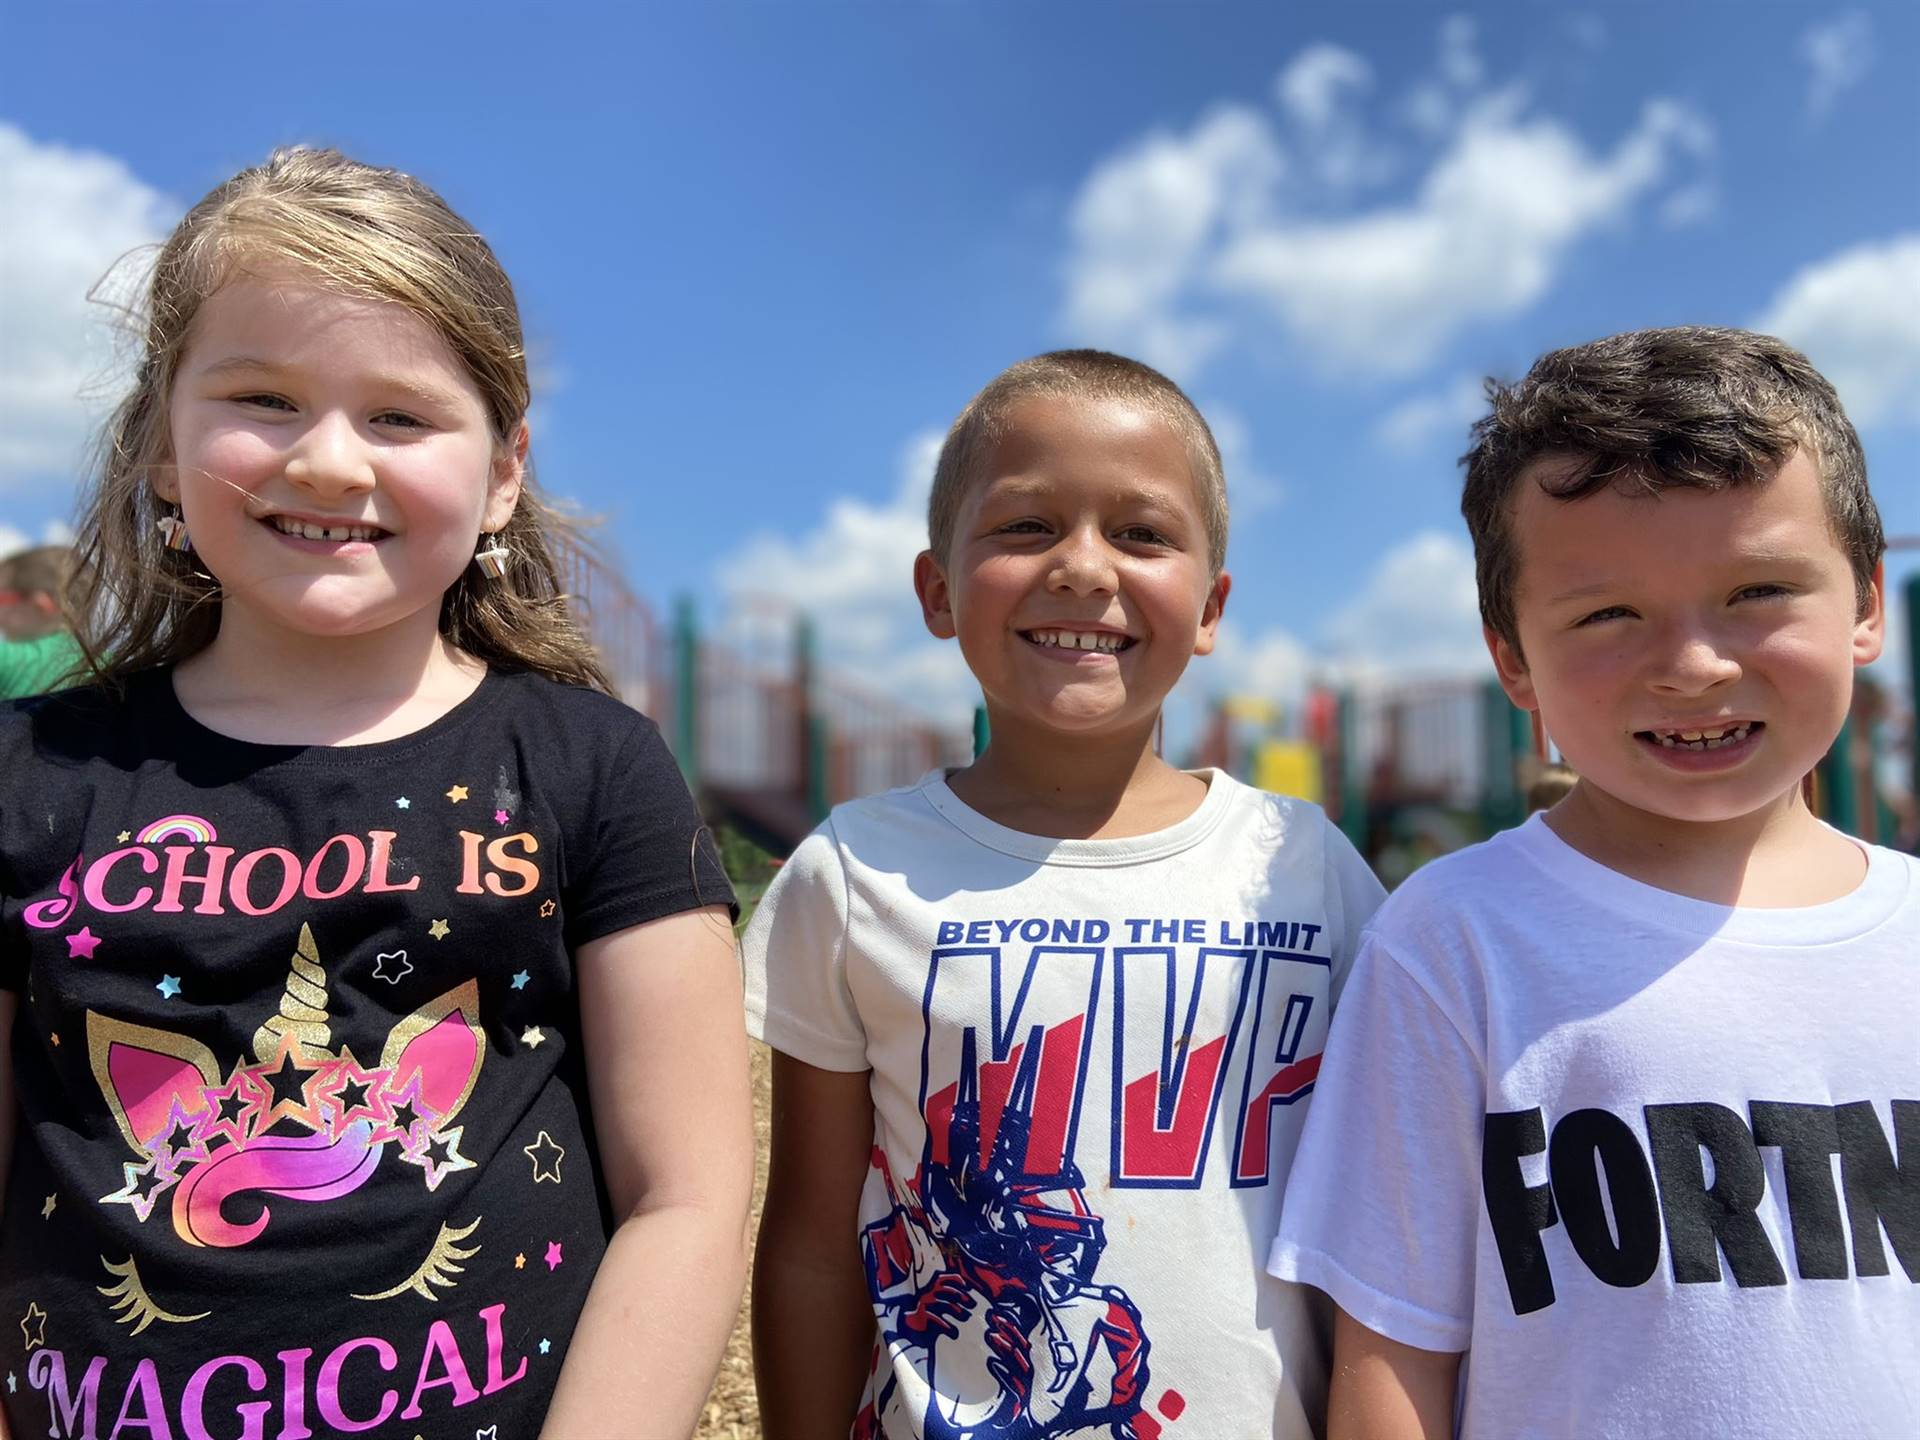 Photo 4:  3 Munson students standing together on the playground on a blue skies day and smiling for